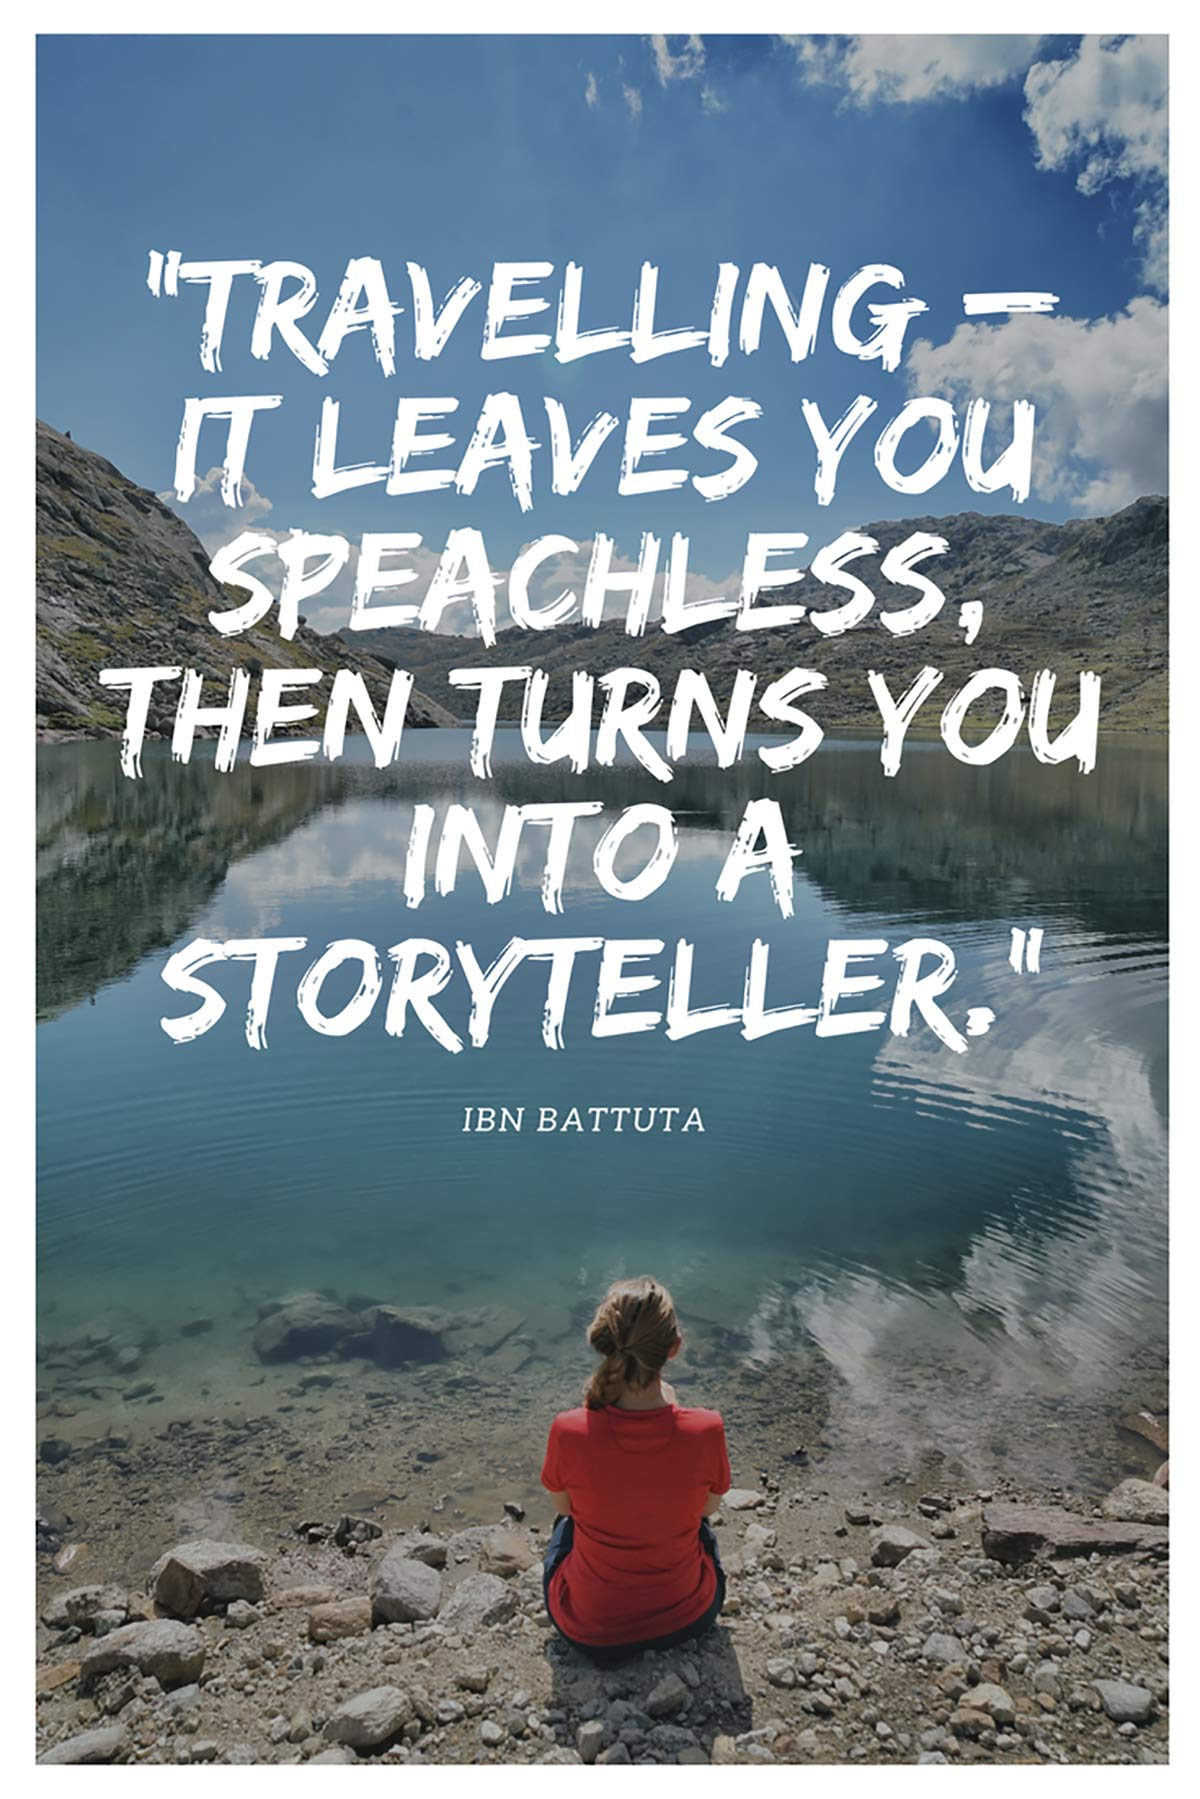 Travelling – it leaves you speechless, then turns you into a storyteller. – Ibn Battuta